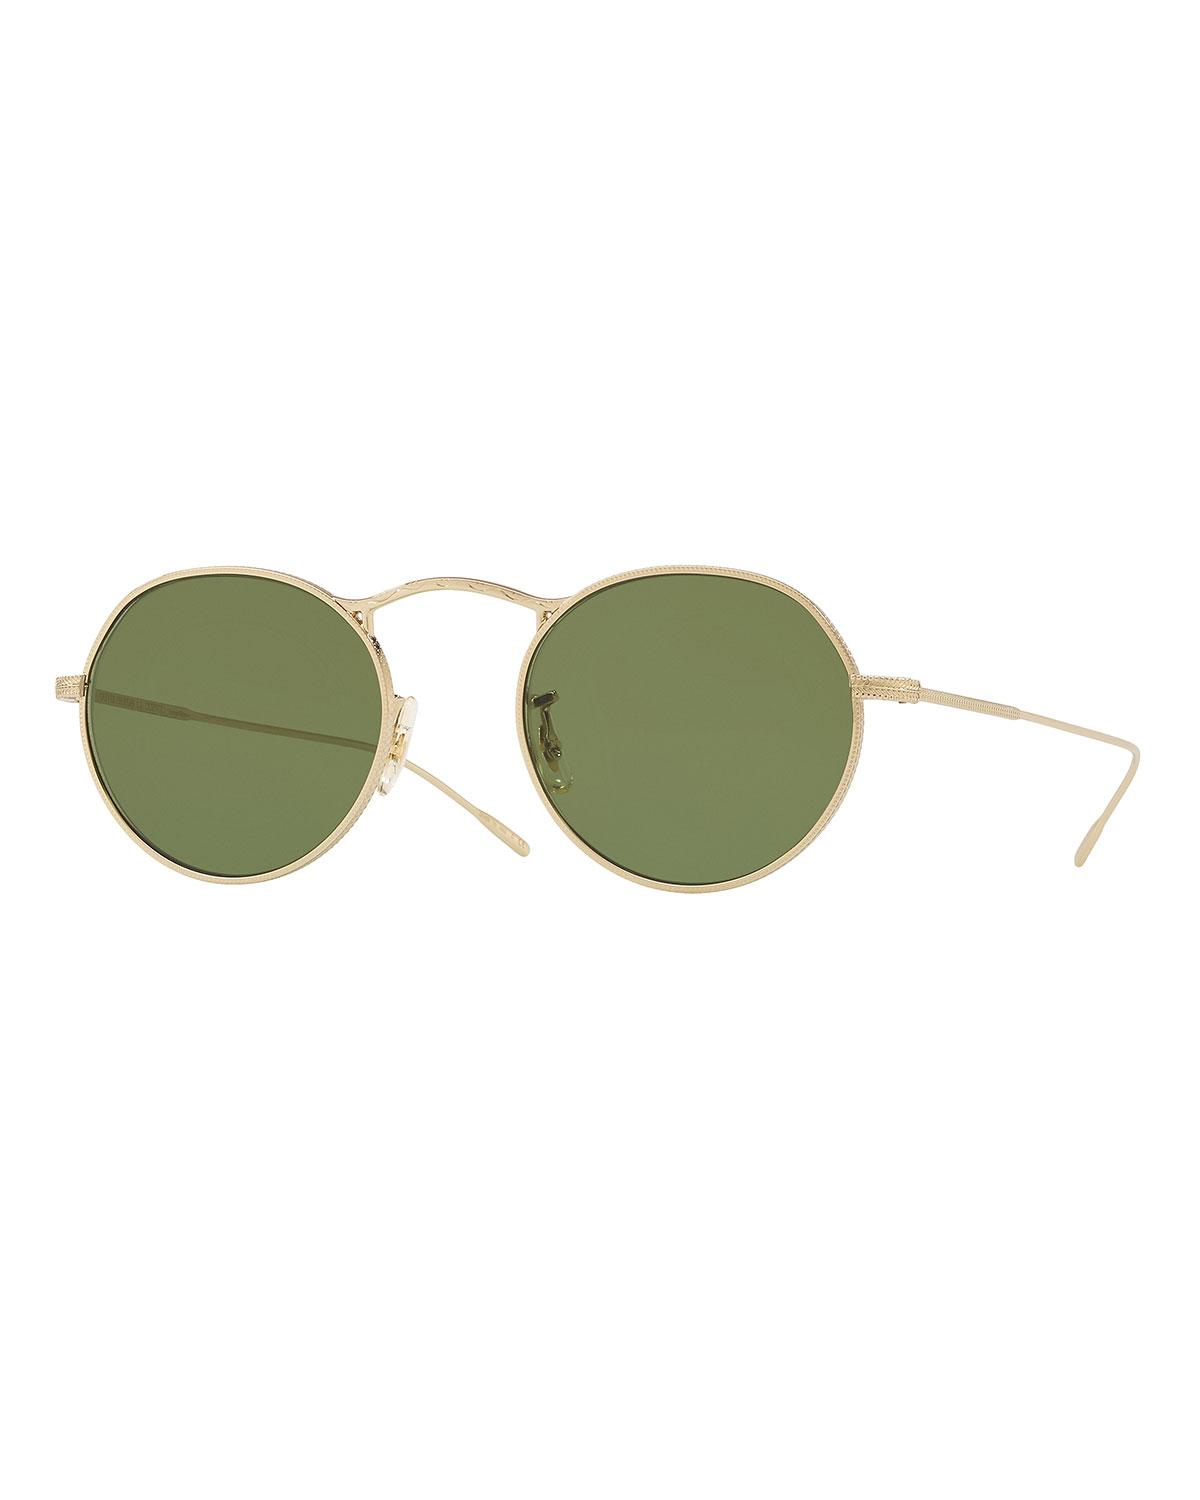 9f17ad96adb1 Lyst - Oliver Peoples M-4 30th Anniversary Round Sunglasses in Green